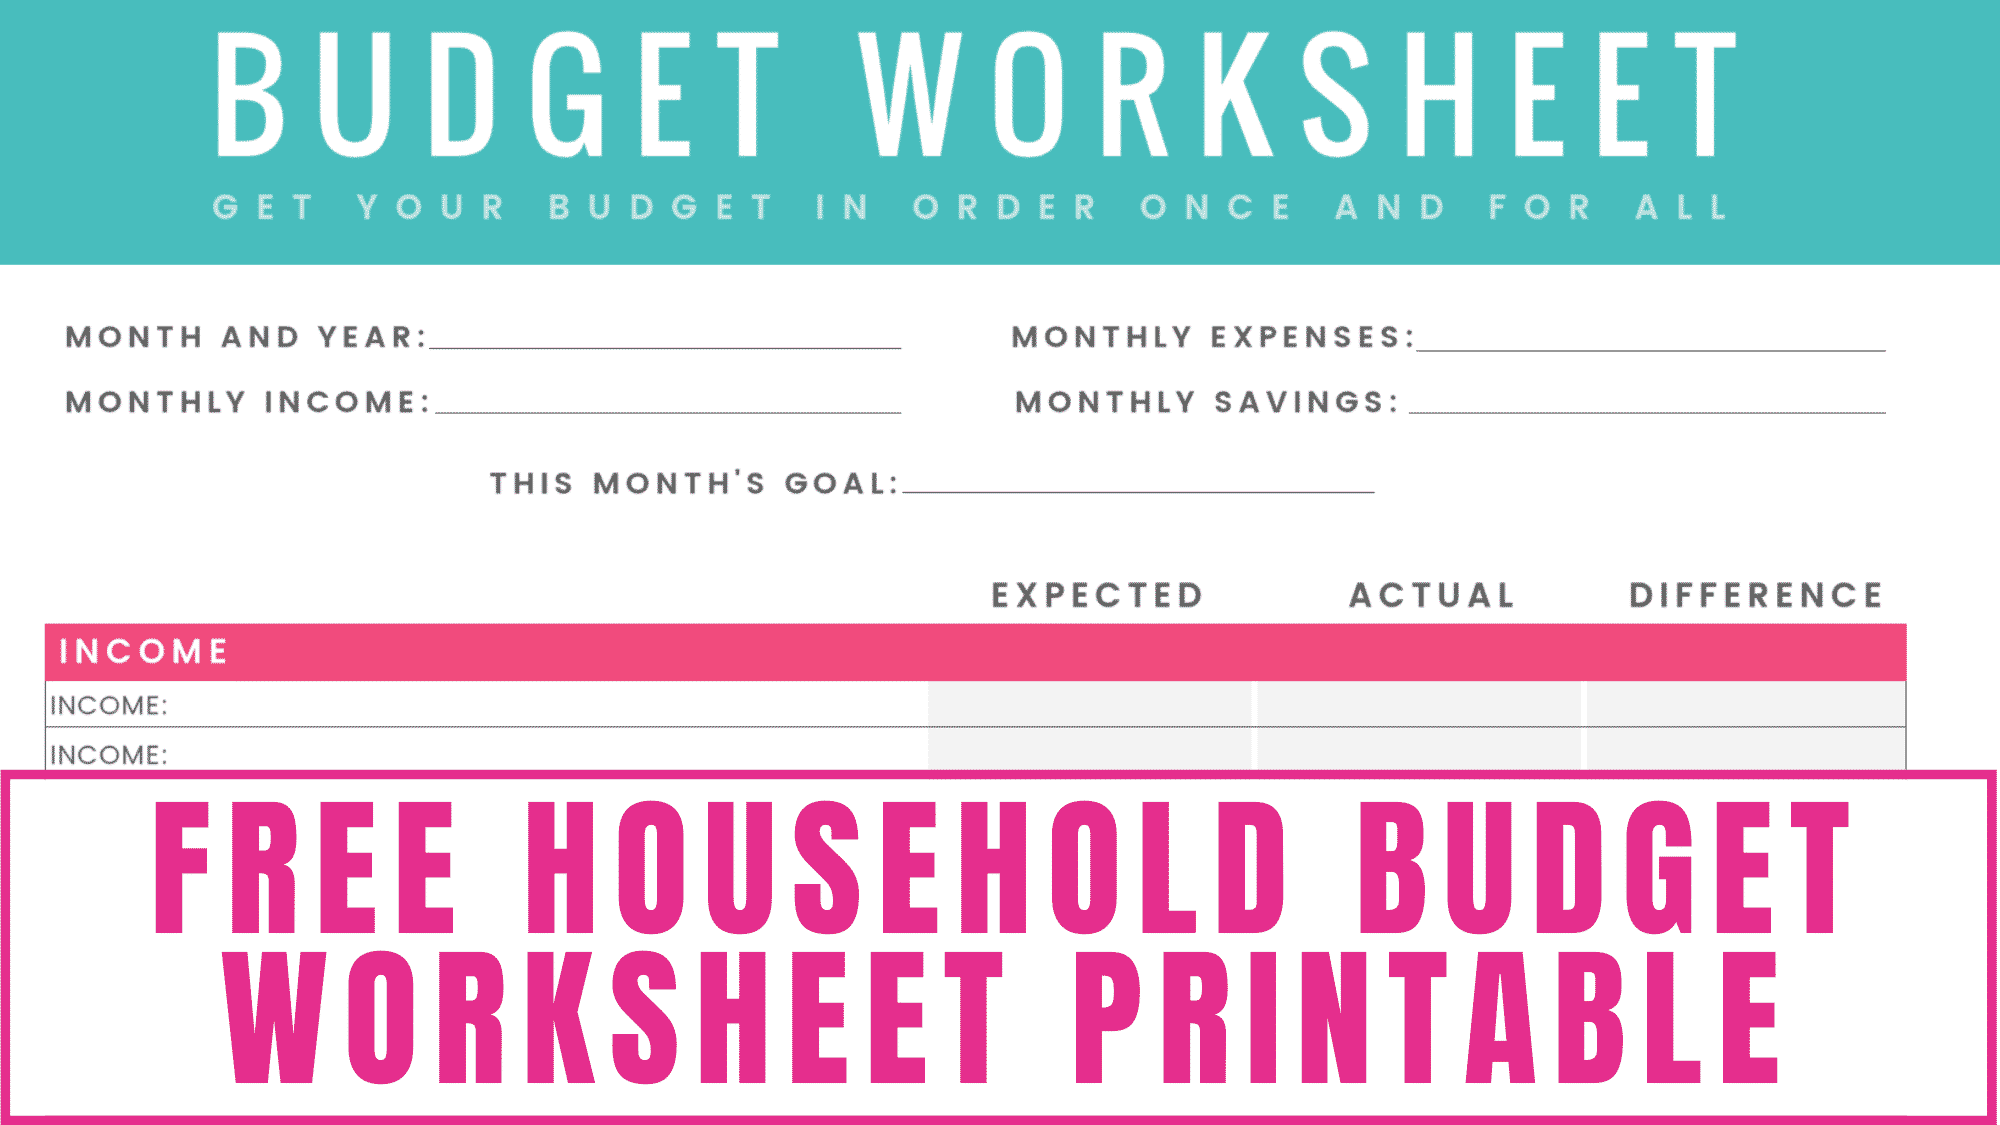 Do you need help budgeting? This free household budget worksheet printable makes setting and achieving your budgeting goals so much easier.